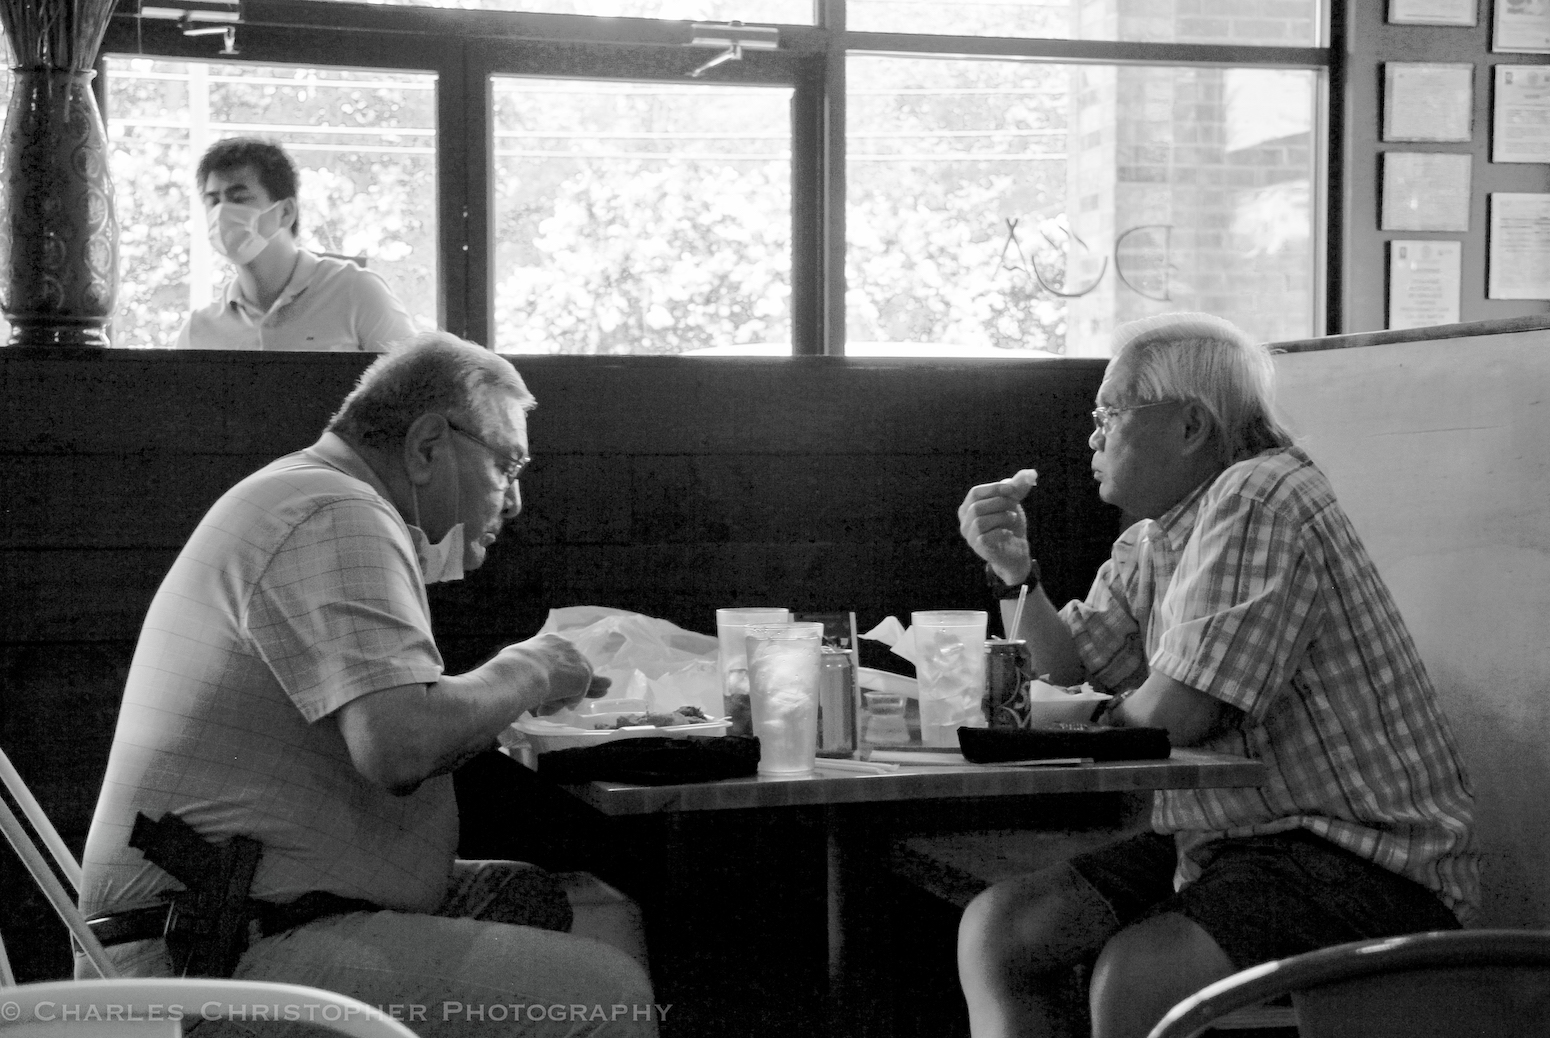 Lunch in the time of COVID-1984